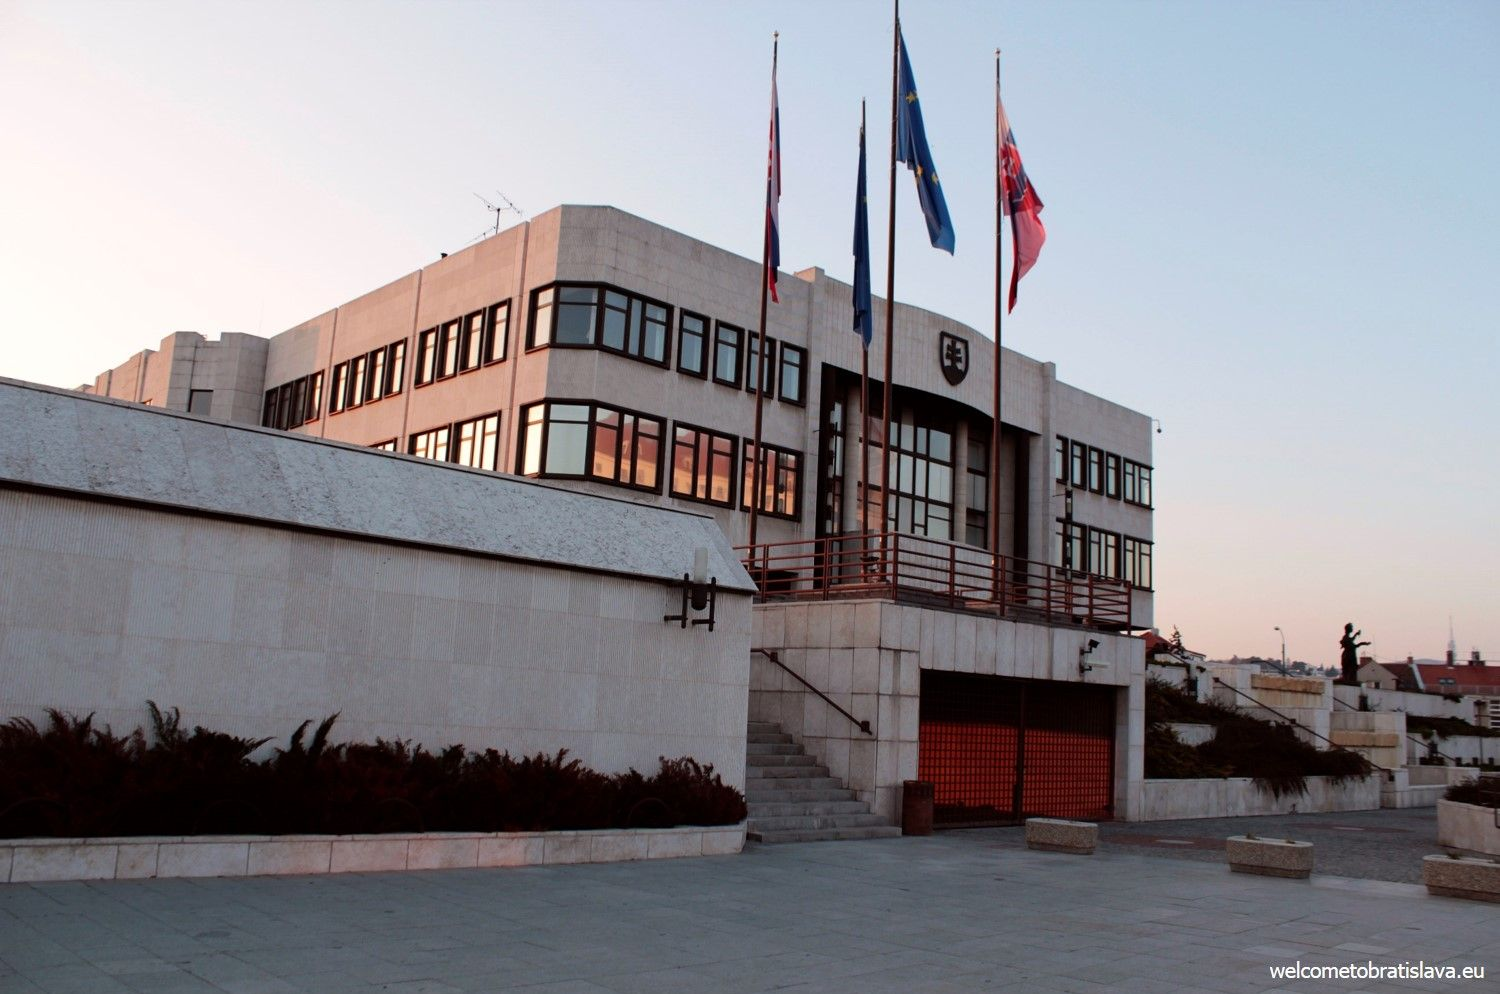 The Slovak National Council